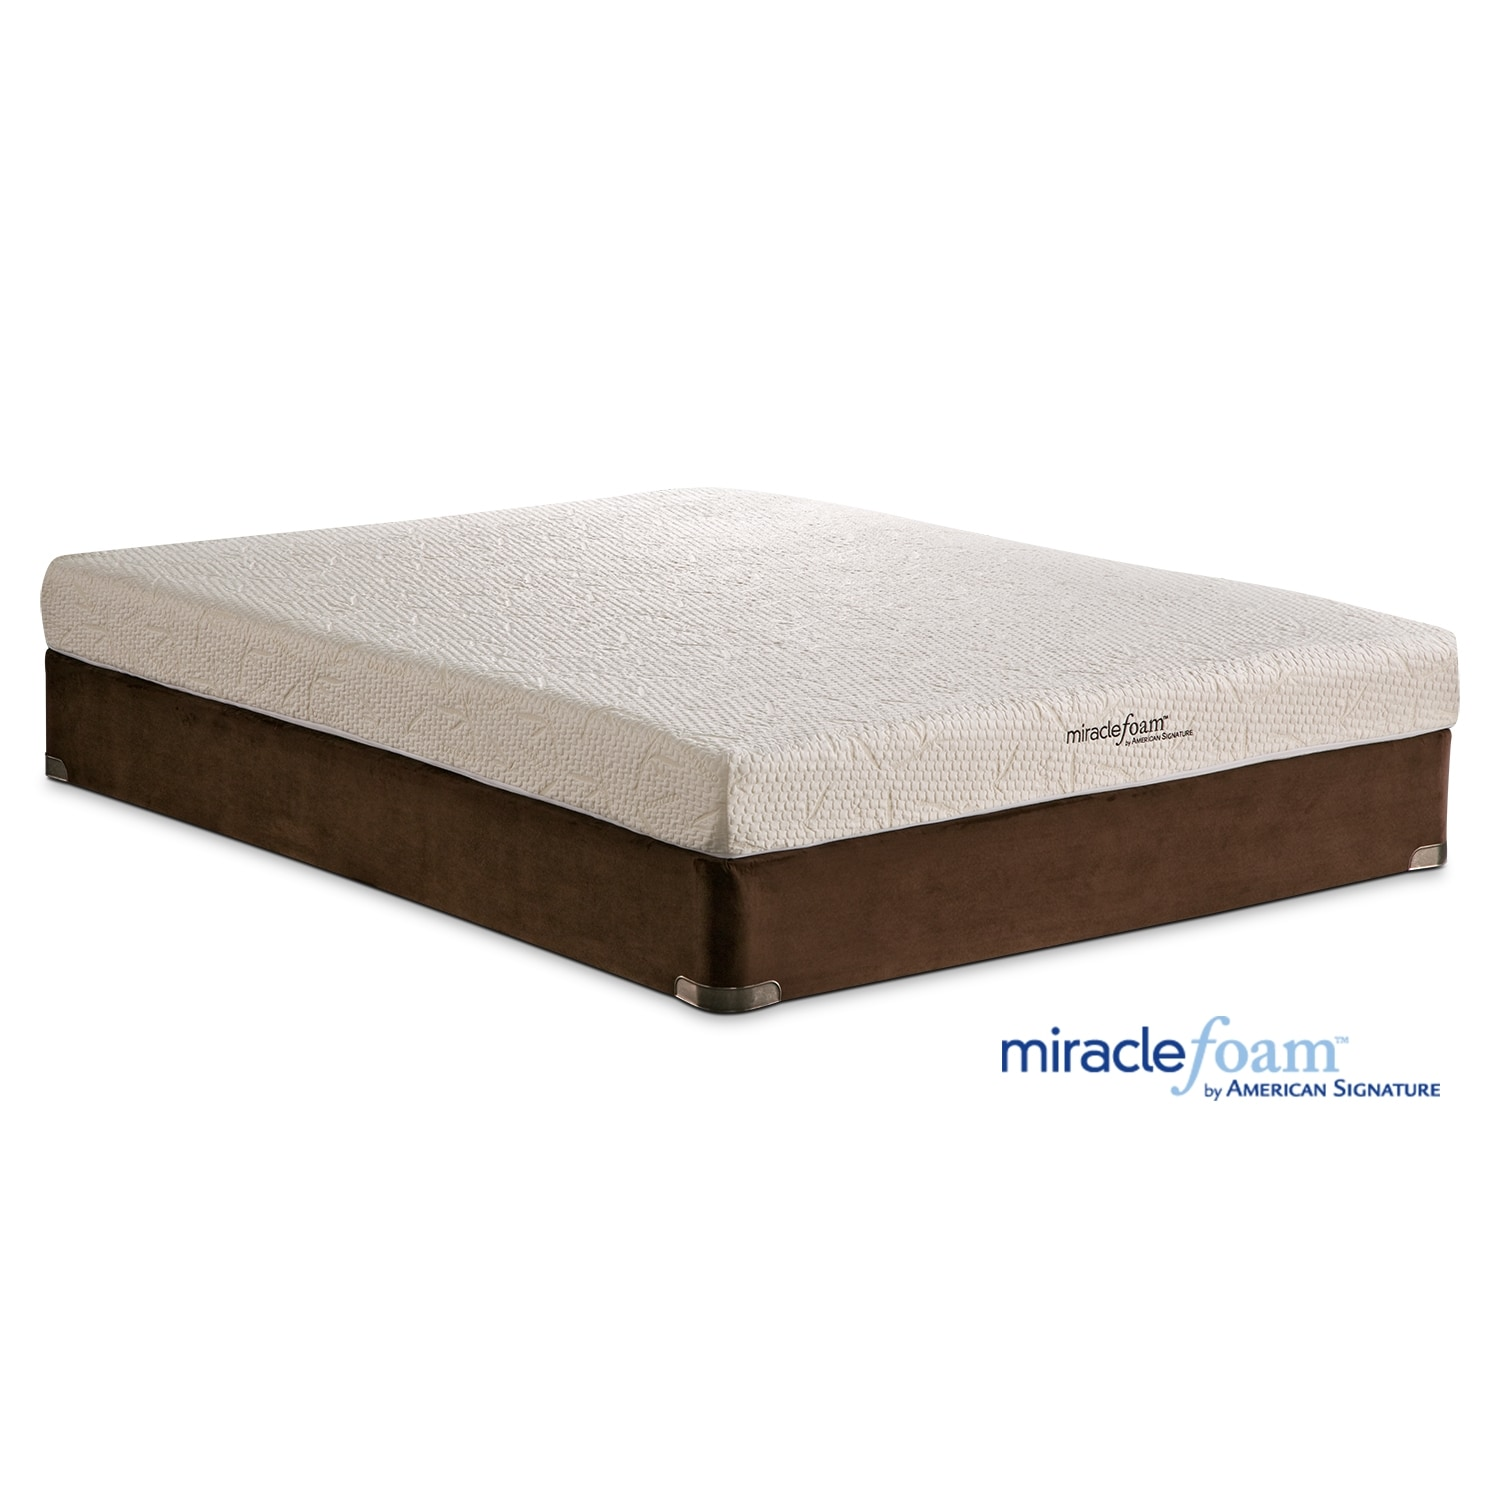 mattresses and bedding value city furniture 17692 | 303893 fit inside 7c320 320 composite to center center 7c320 320 background color white